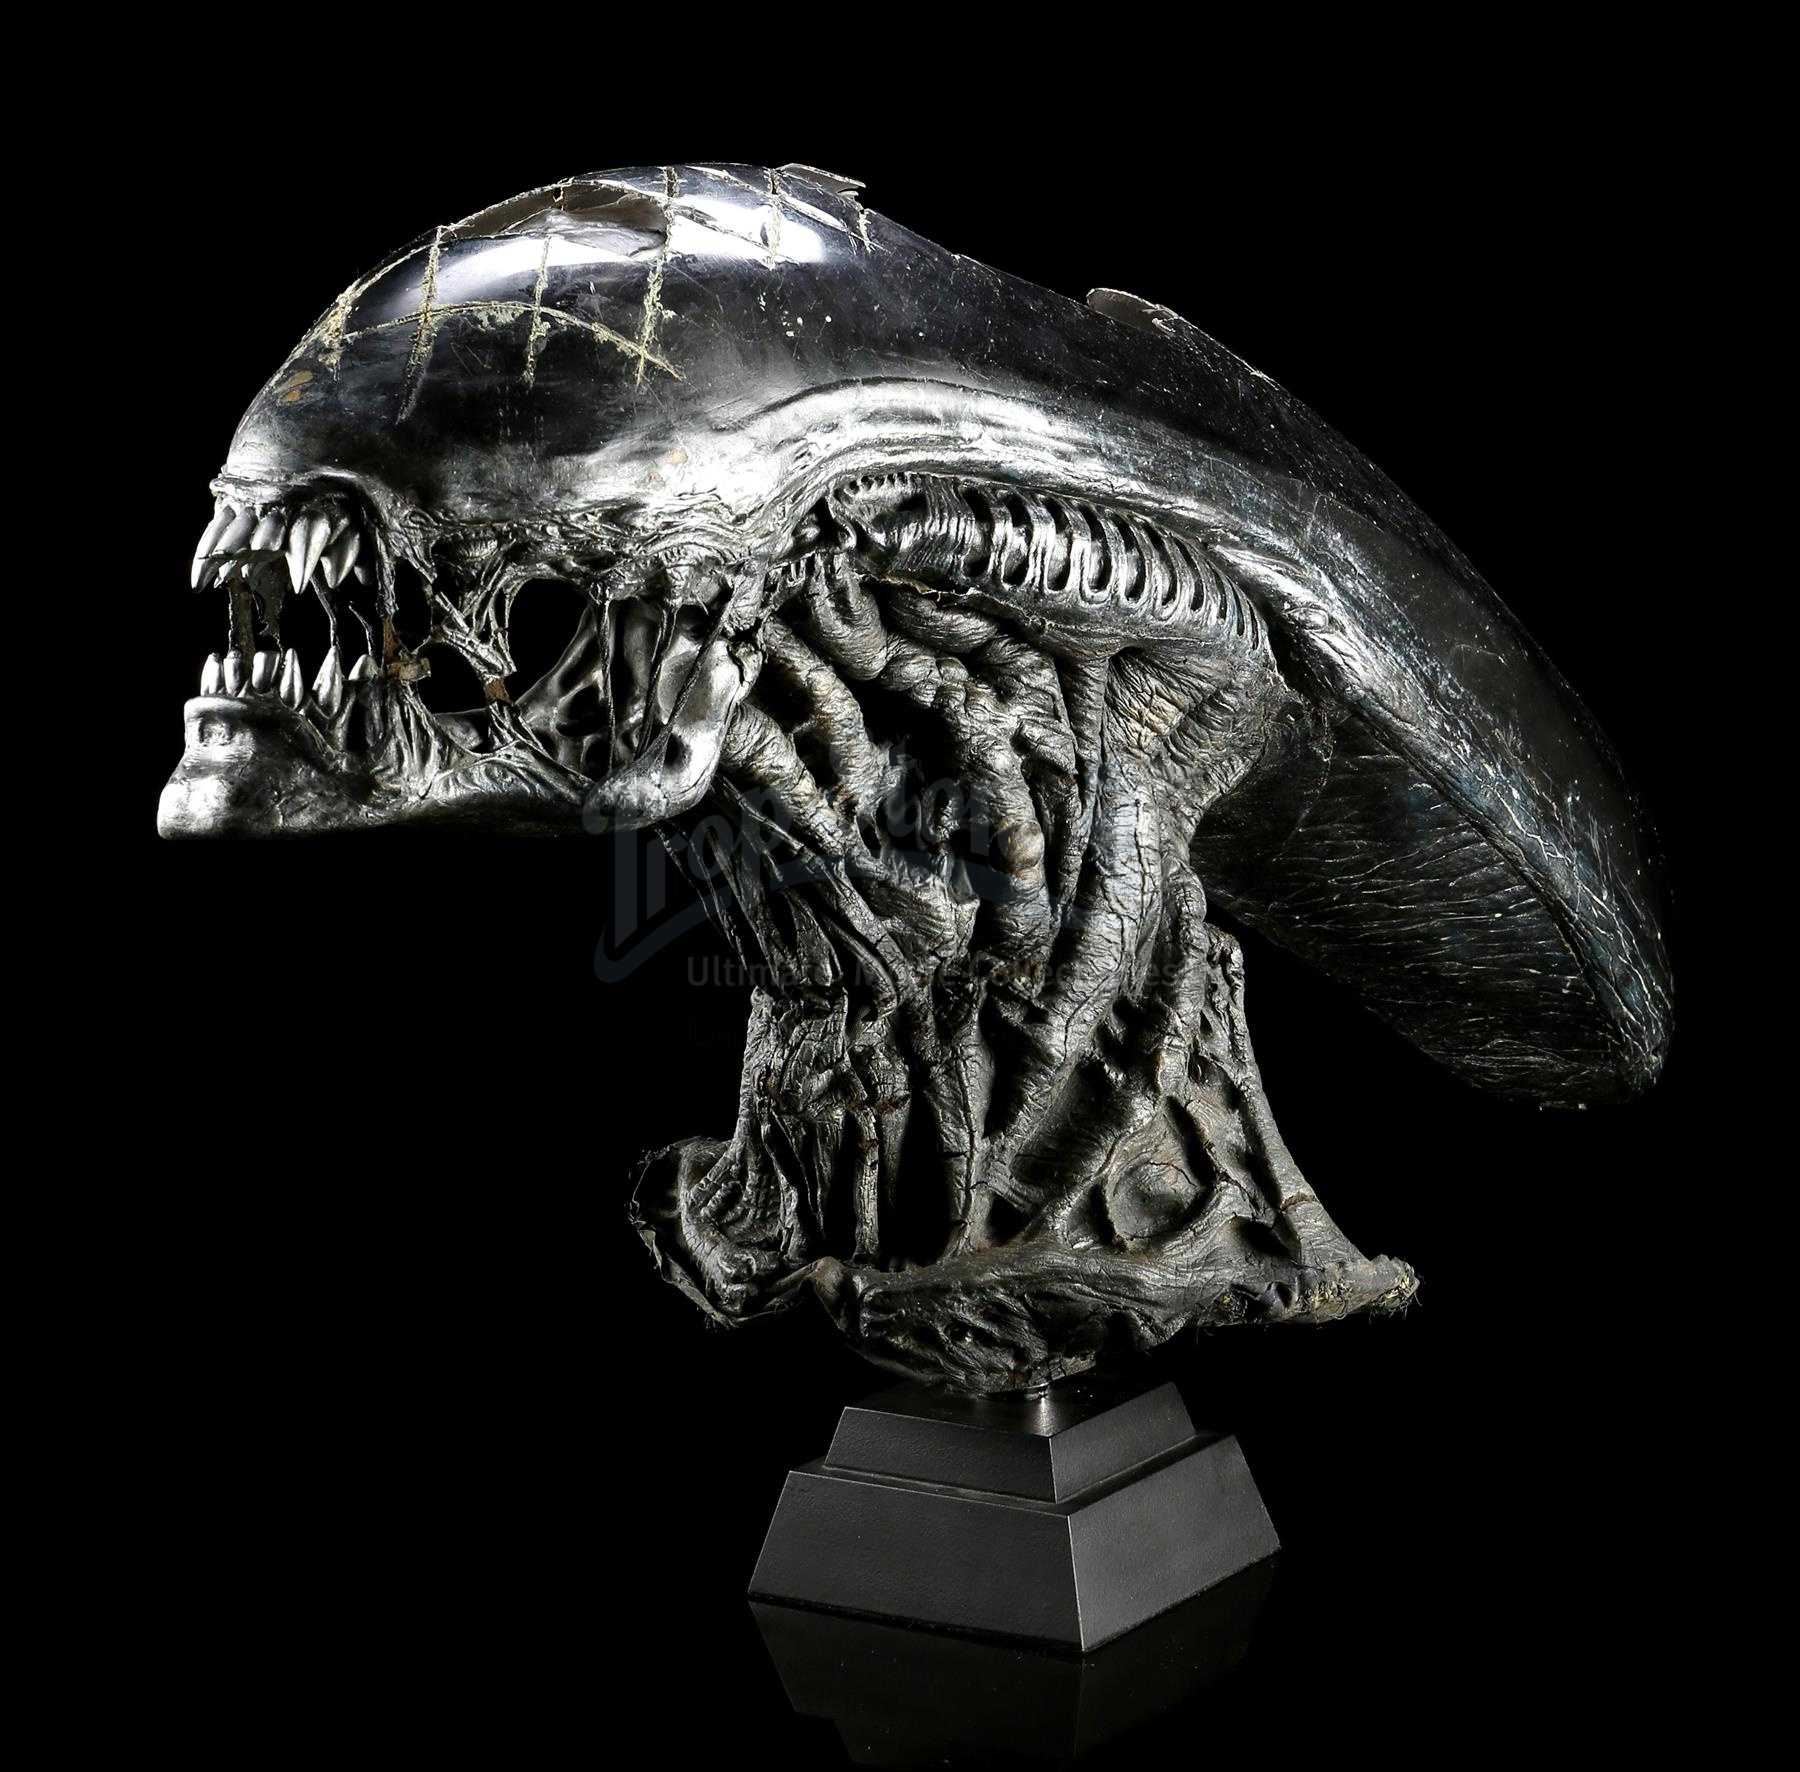 Prop Store's Live Auction 29th September 2017 - Alien and Predator Props